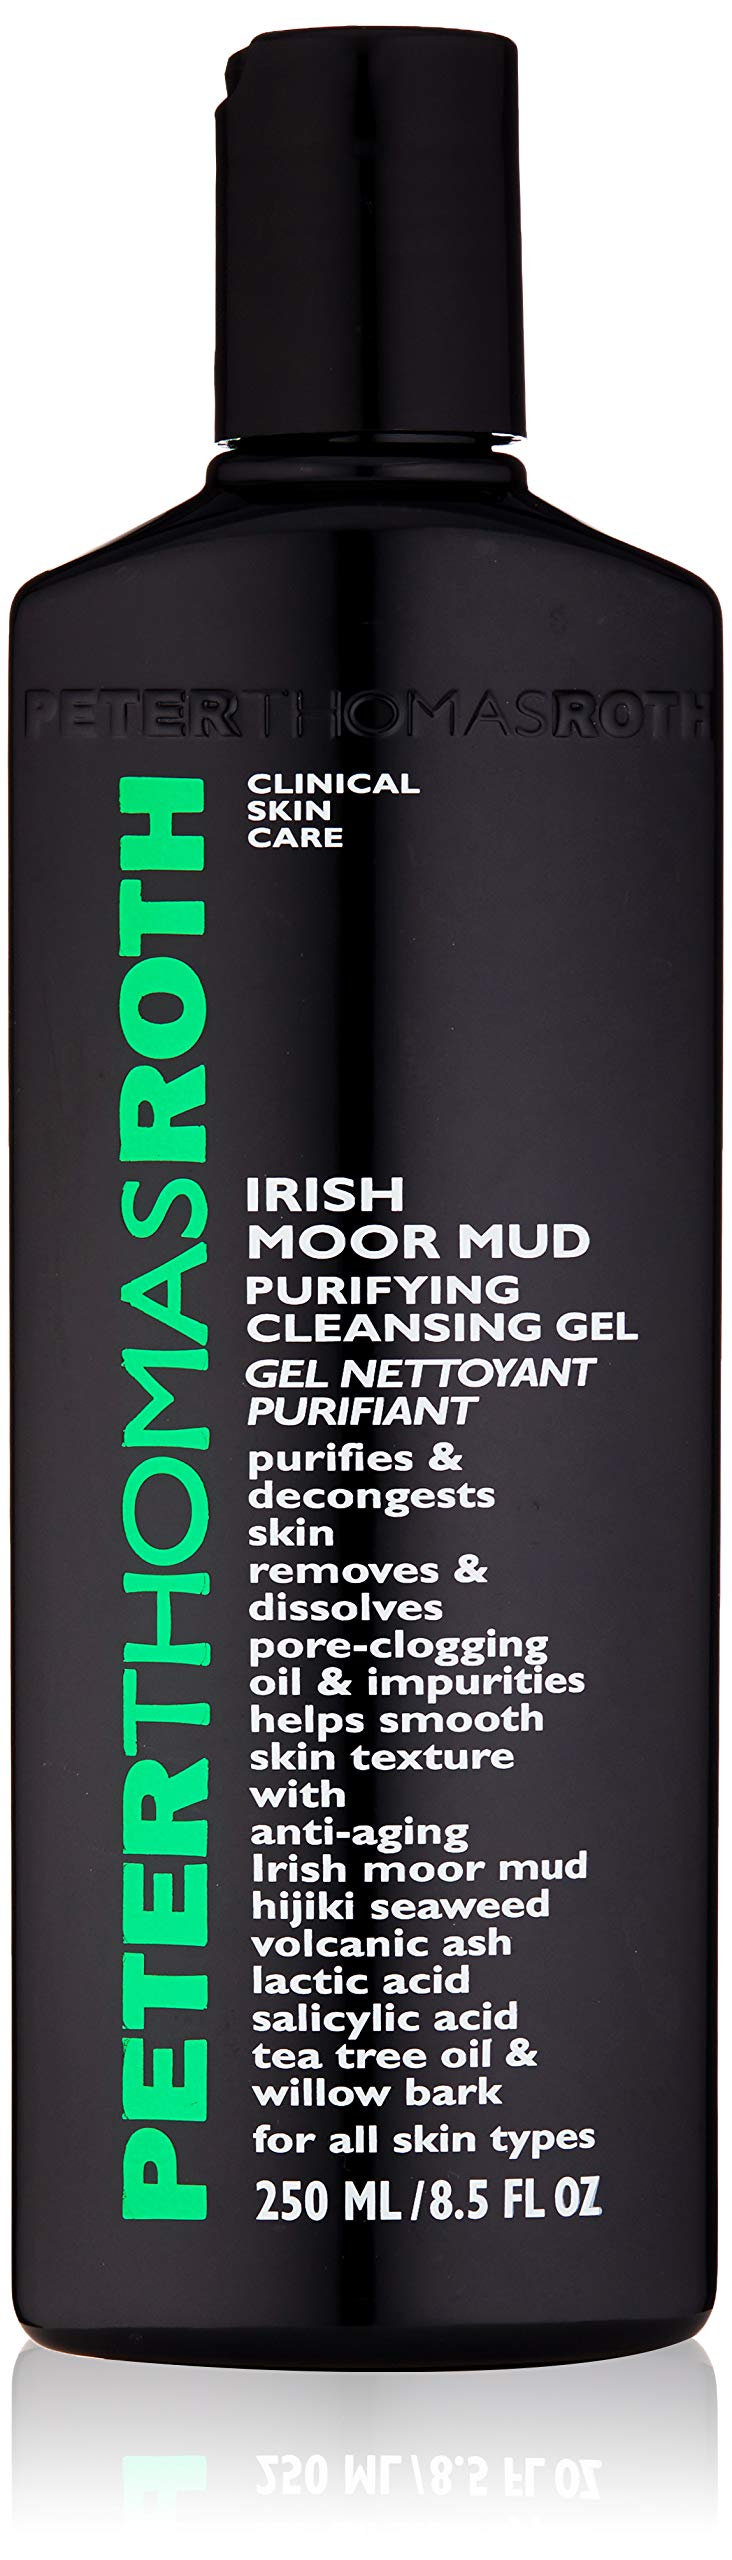 Peter Thomas Roth Irish Moor Mud Purifying Cleansing Gel, 8.5 Ounce